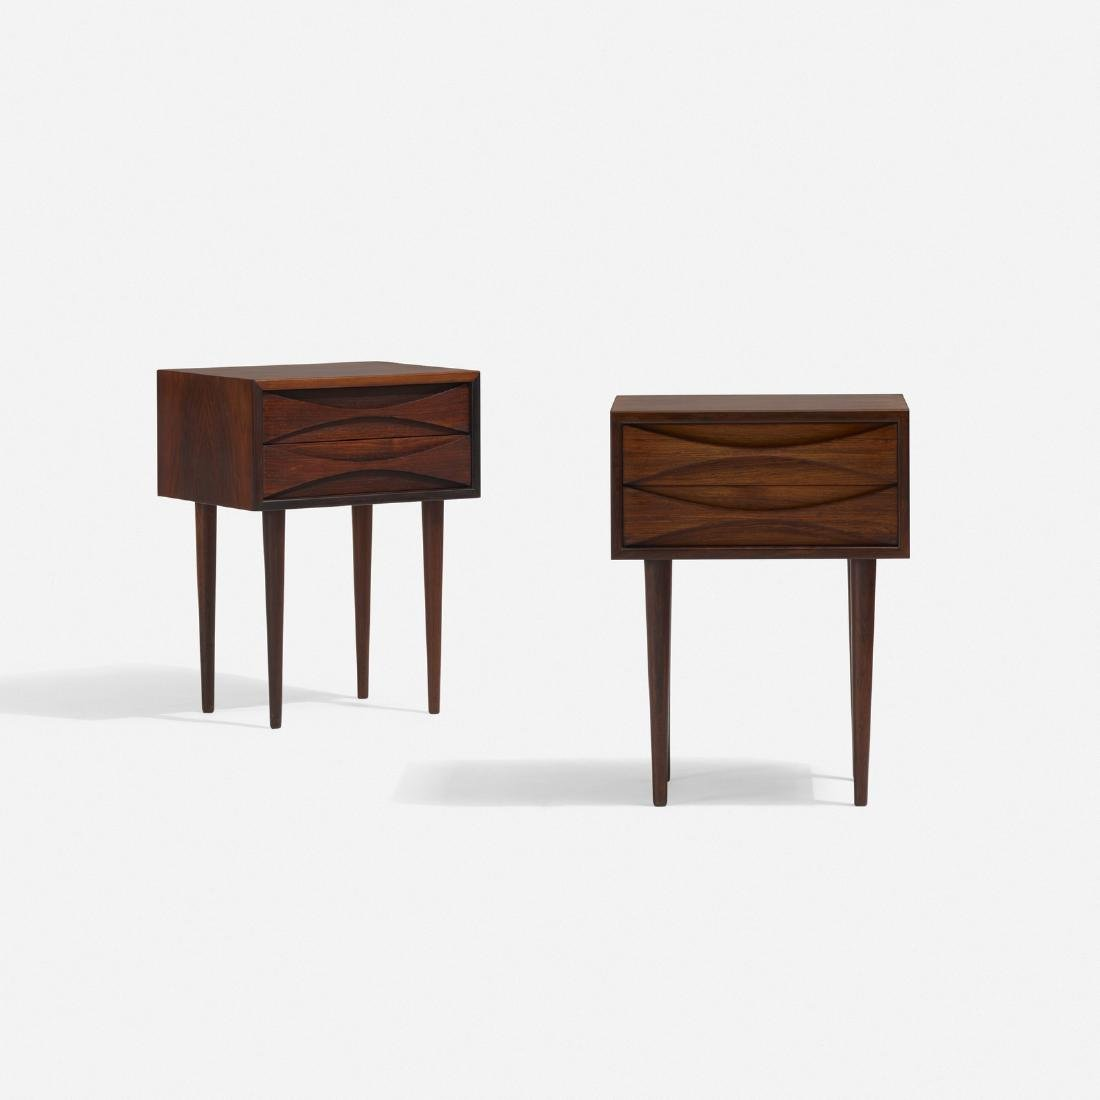 Arne Vodder, nightstands, pair